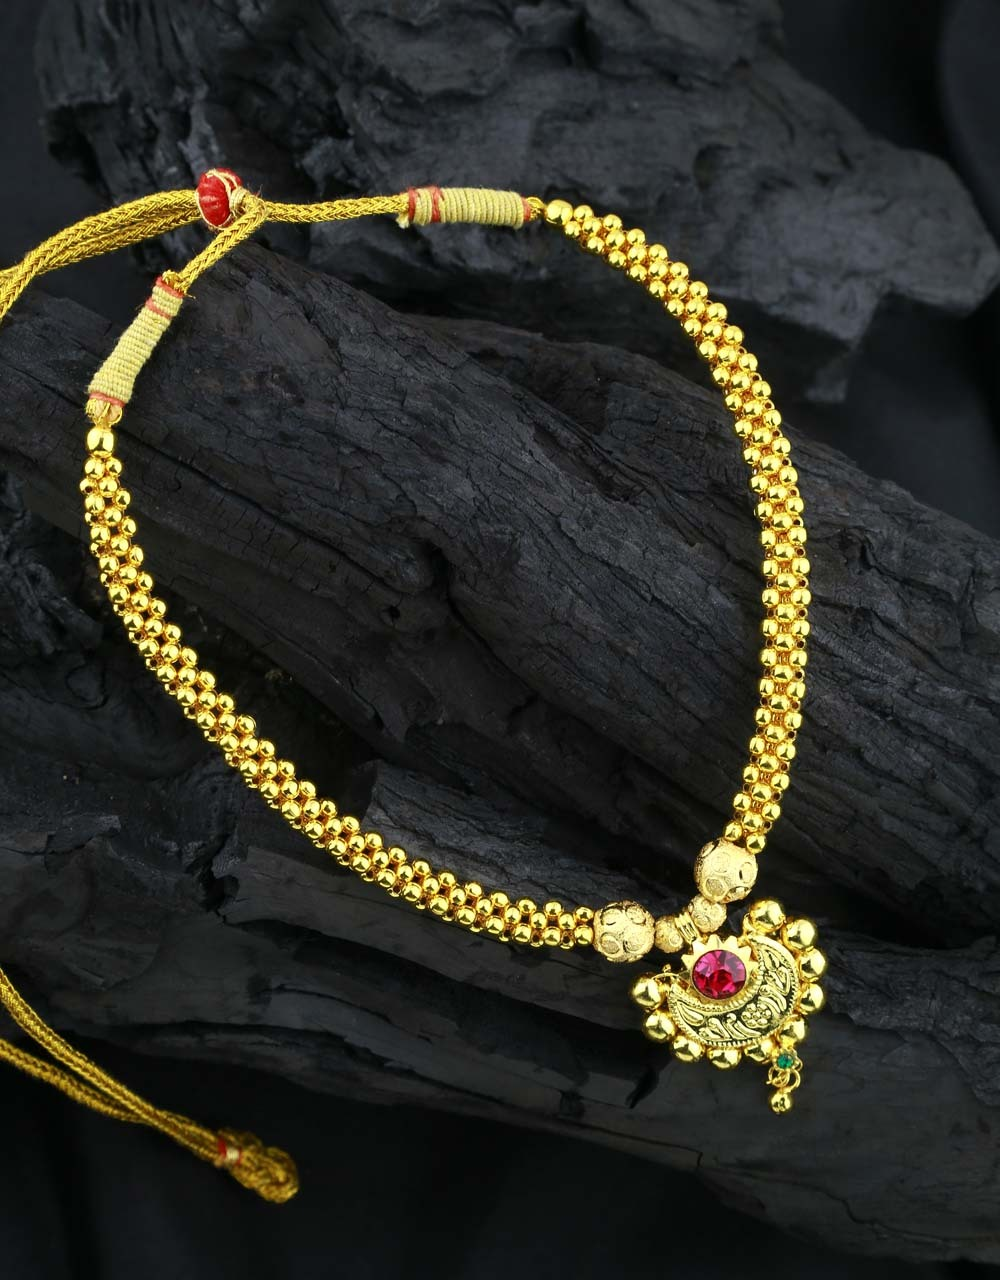 Beautiful Golden Finished Adorable Thushi Necklace with Chandrakor Pendant